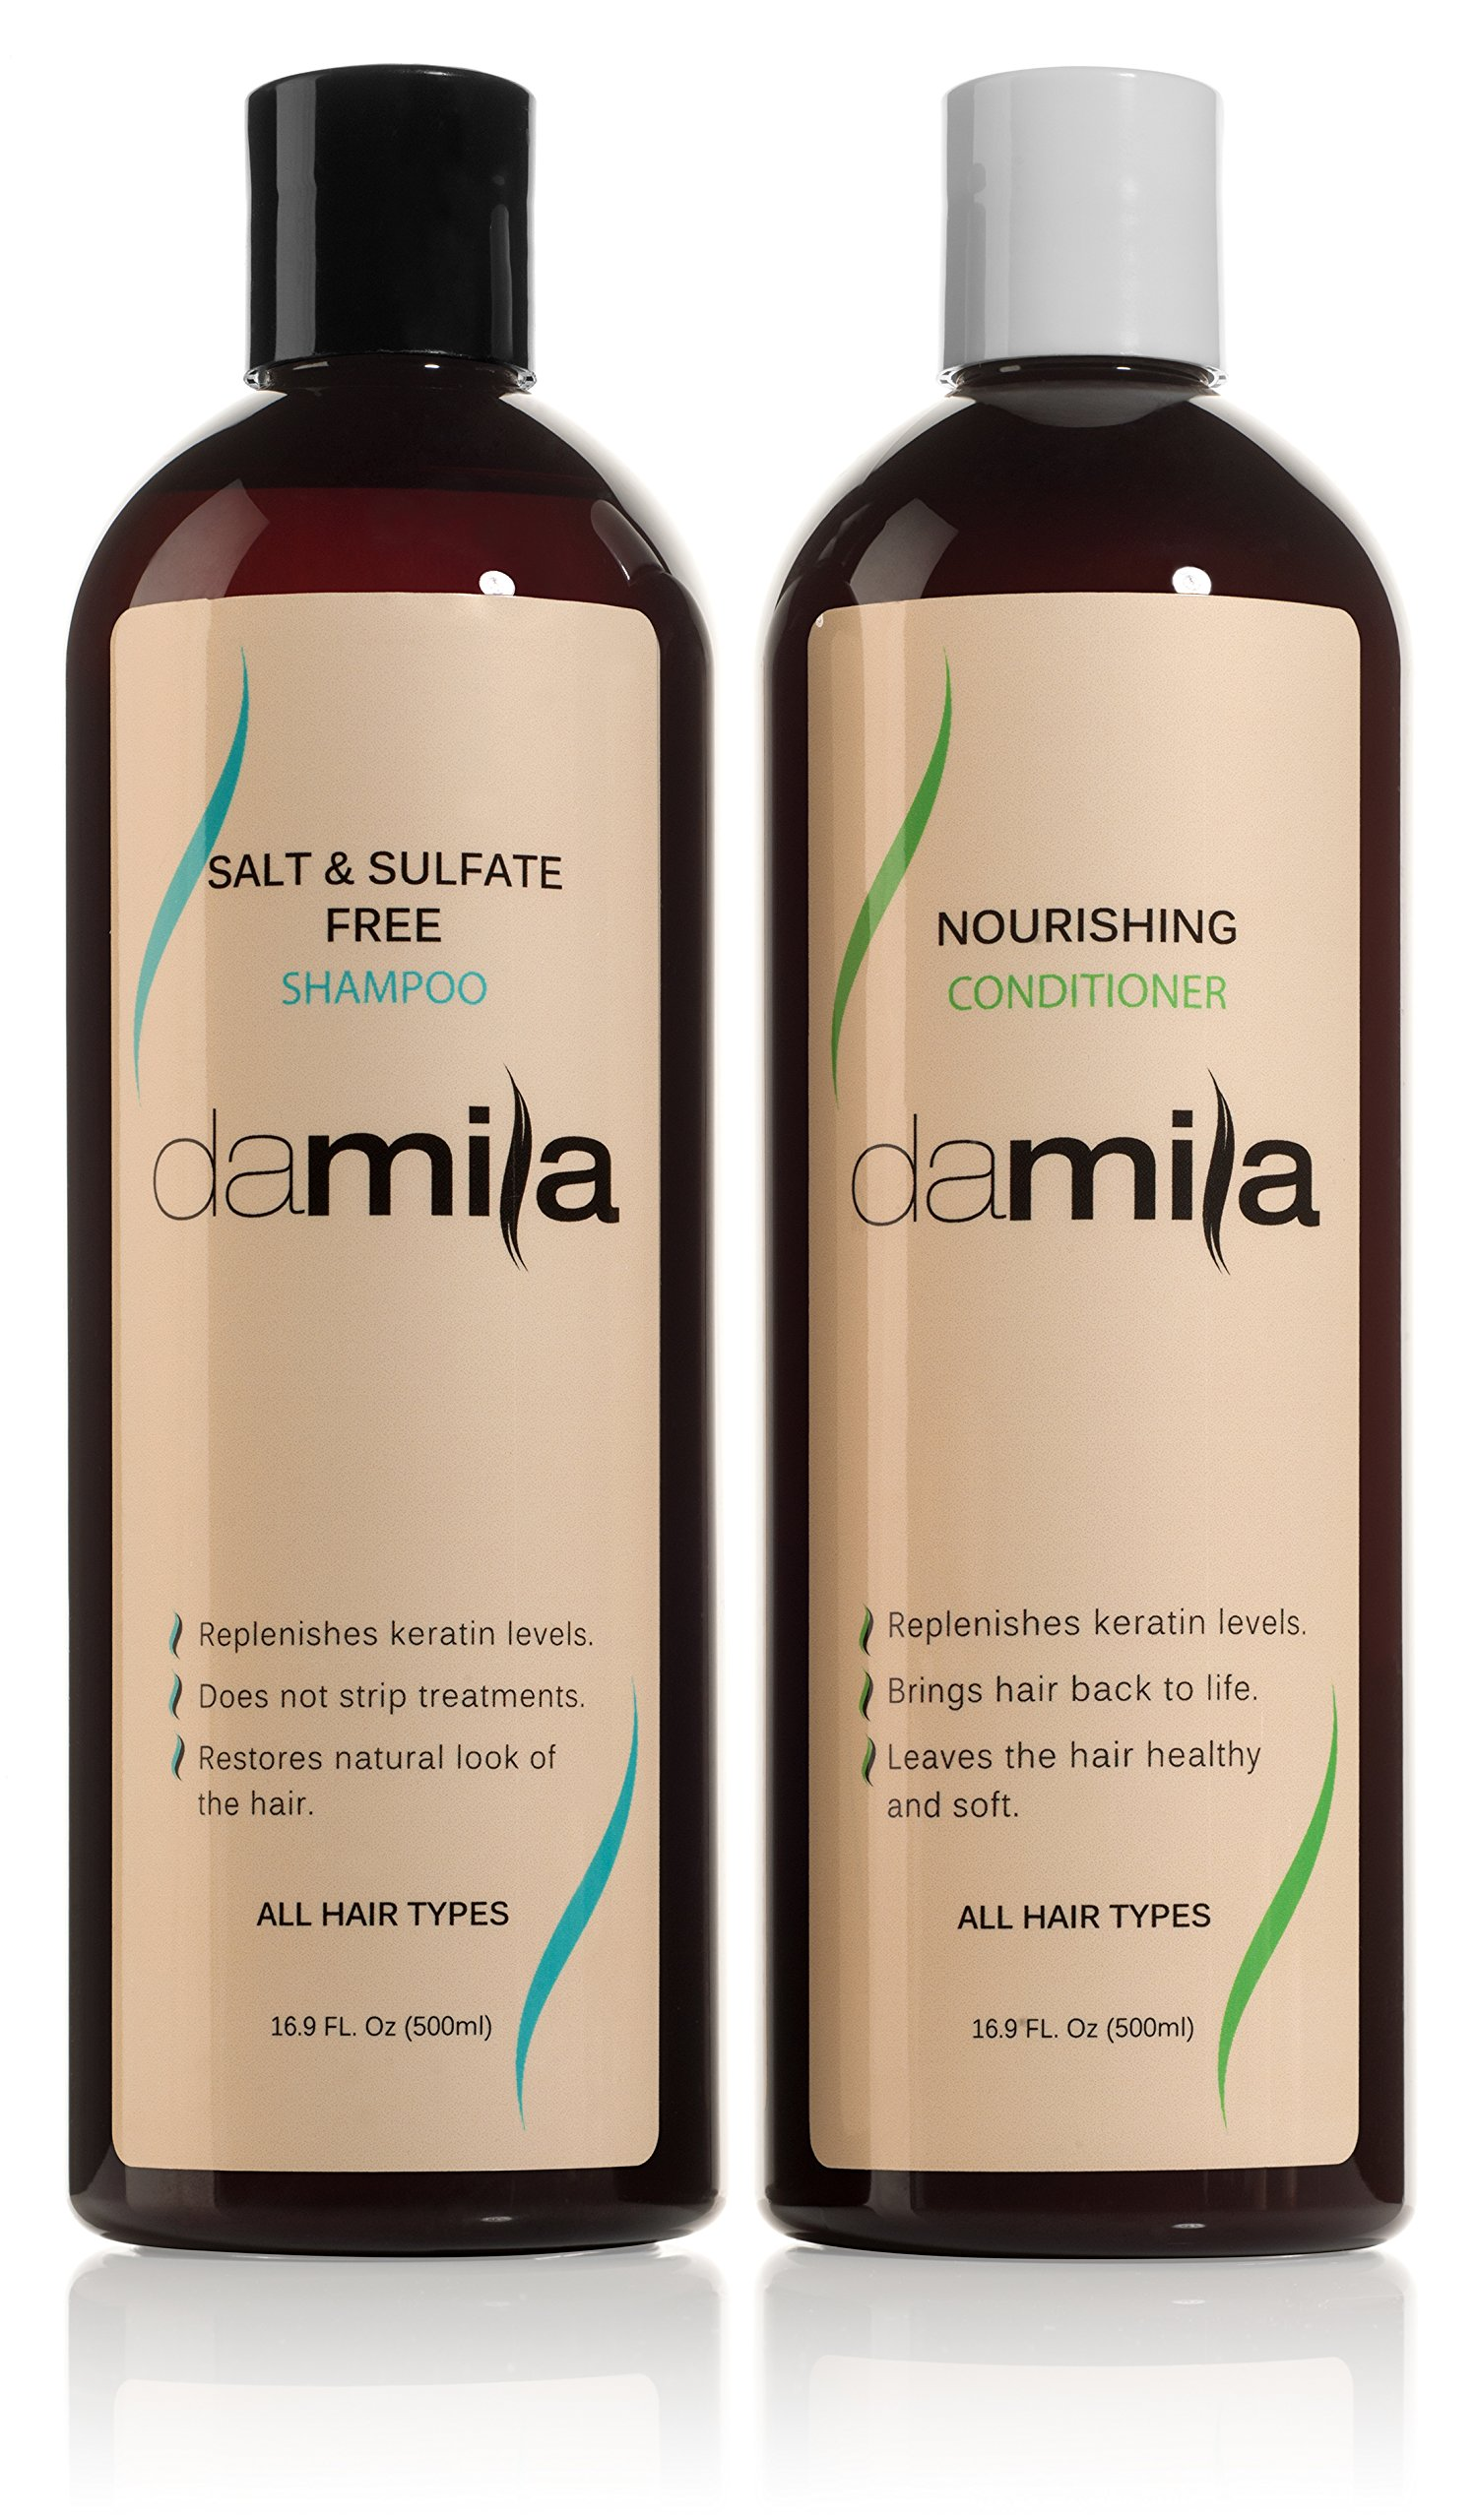 Salt & Sulfate Free Shampoo and Nourishing Conditioner - Keratin Complex. For Daily Use, Combo Set. Extends the Life of Keratin Treatment & Enhances Results and Restores Hair (16.9 Fl Oz) by Damila